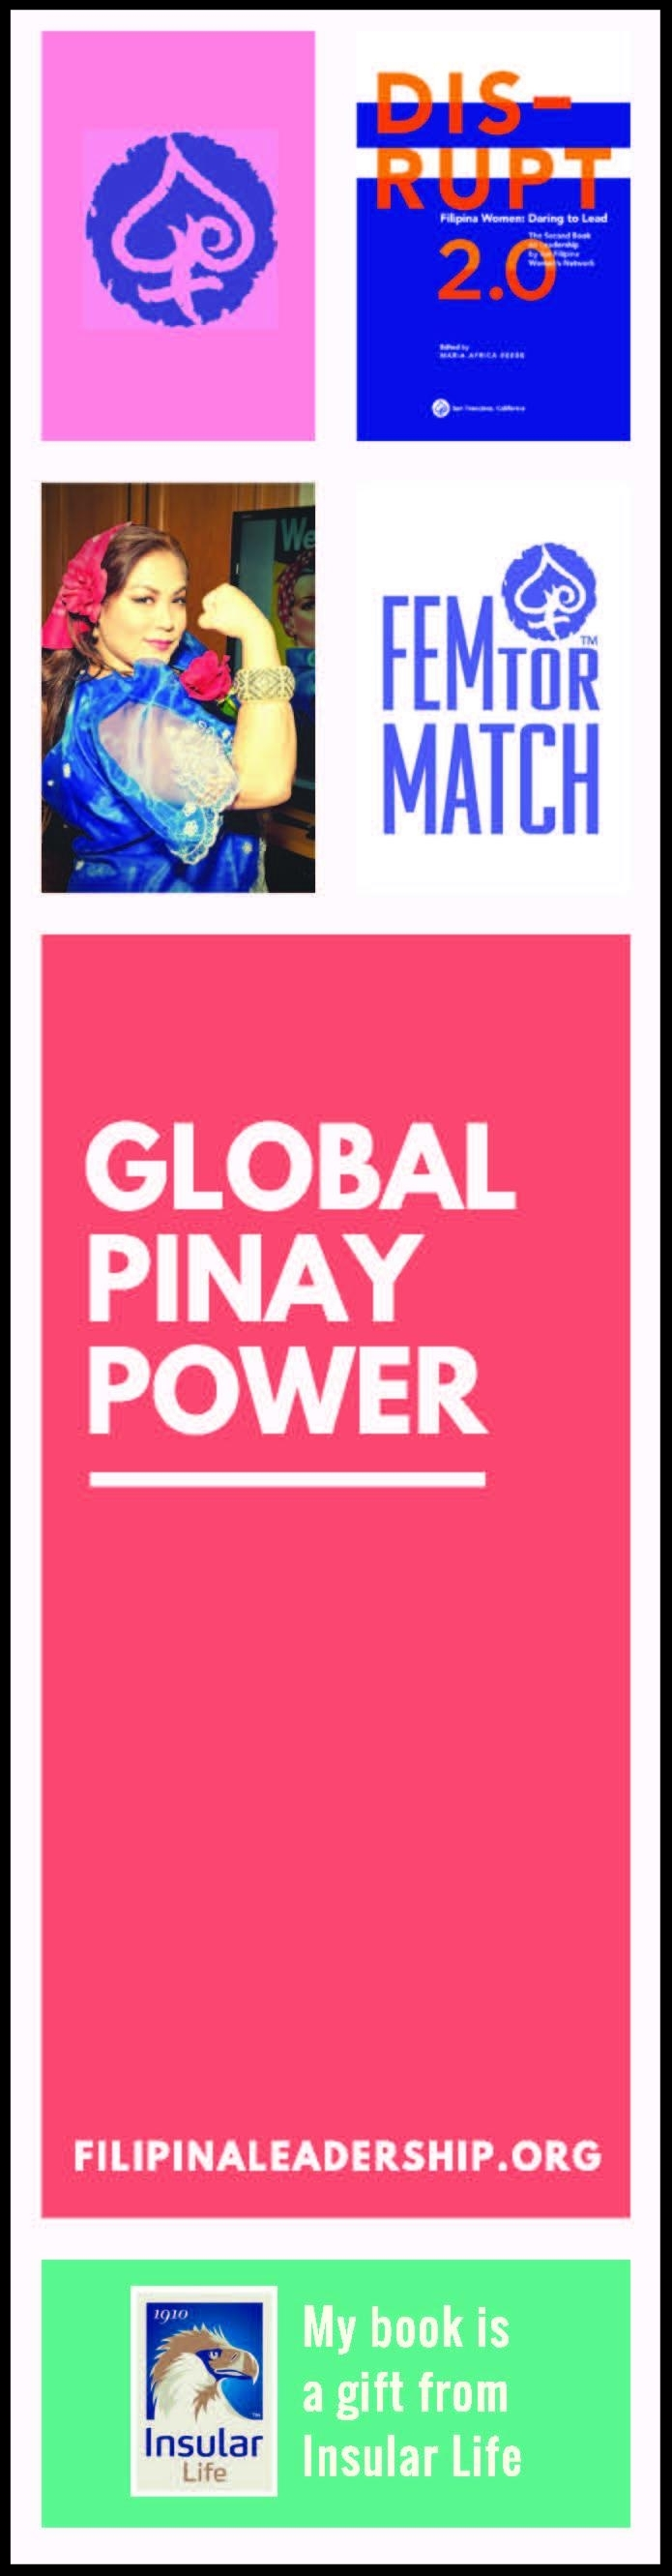 GlobalPinayPower